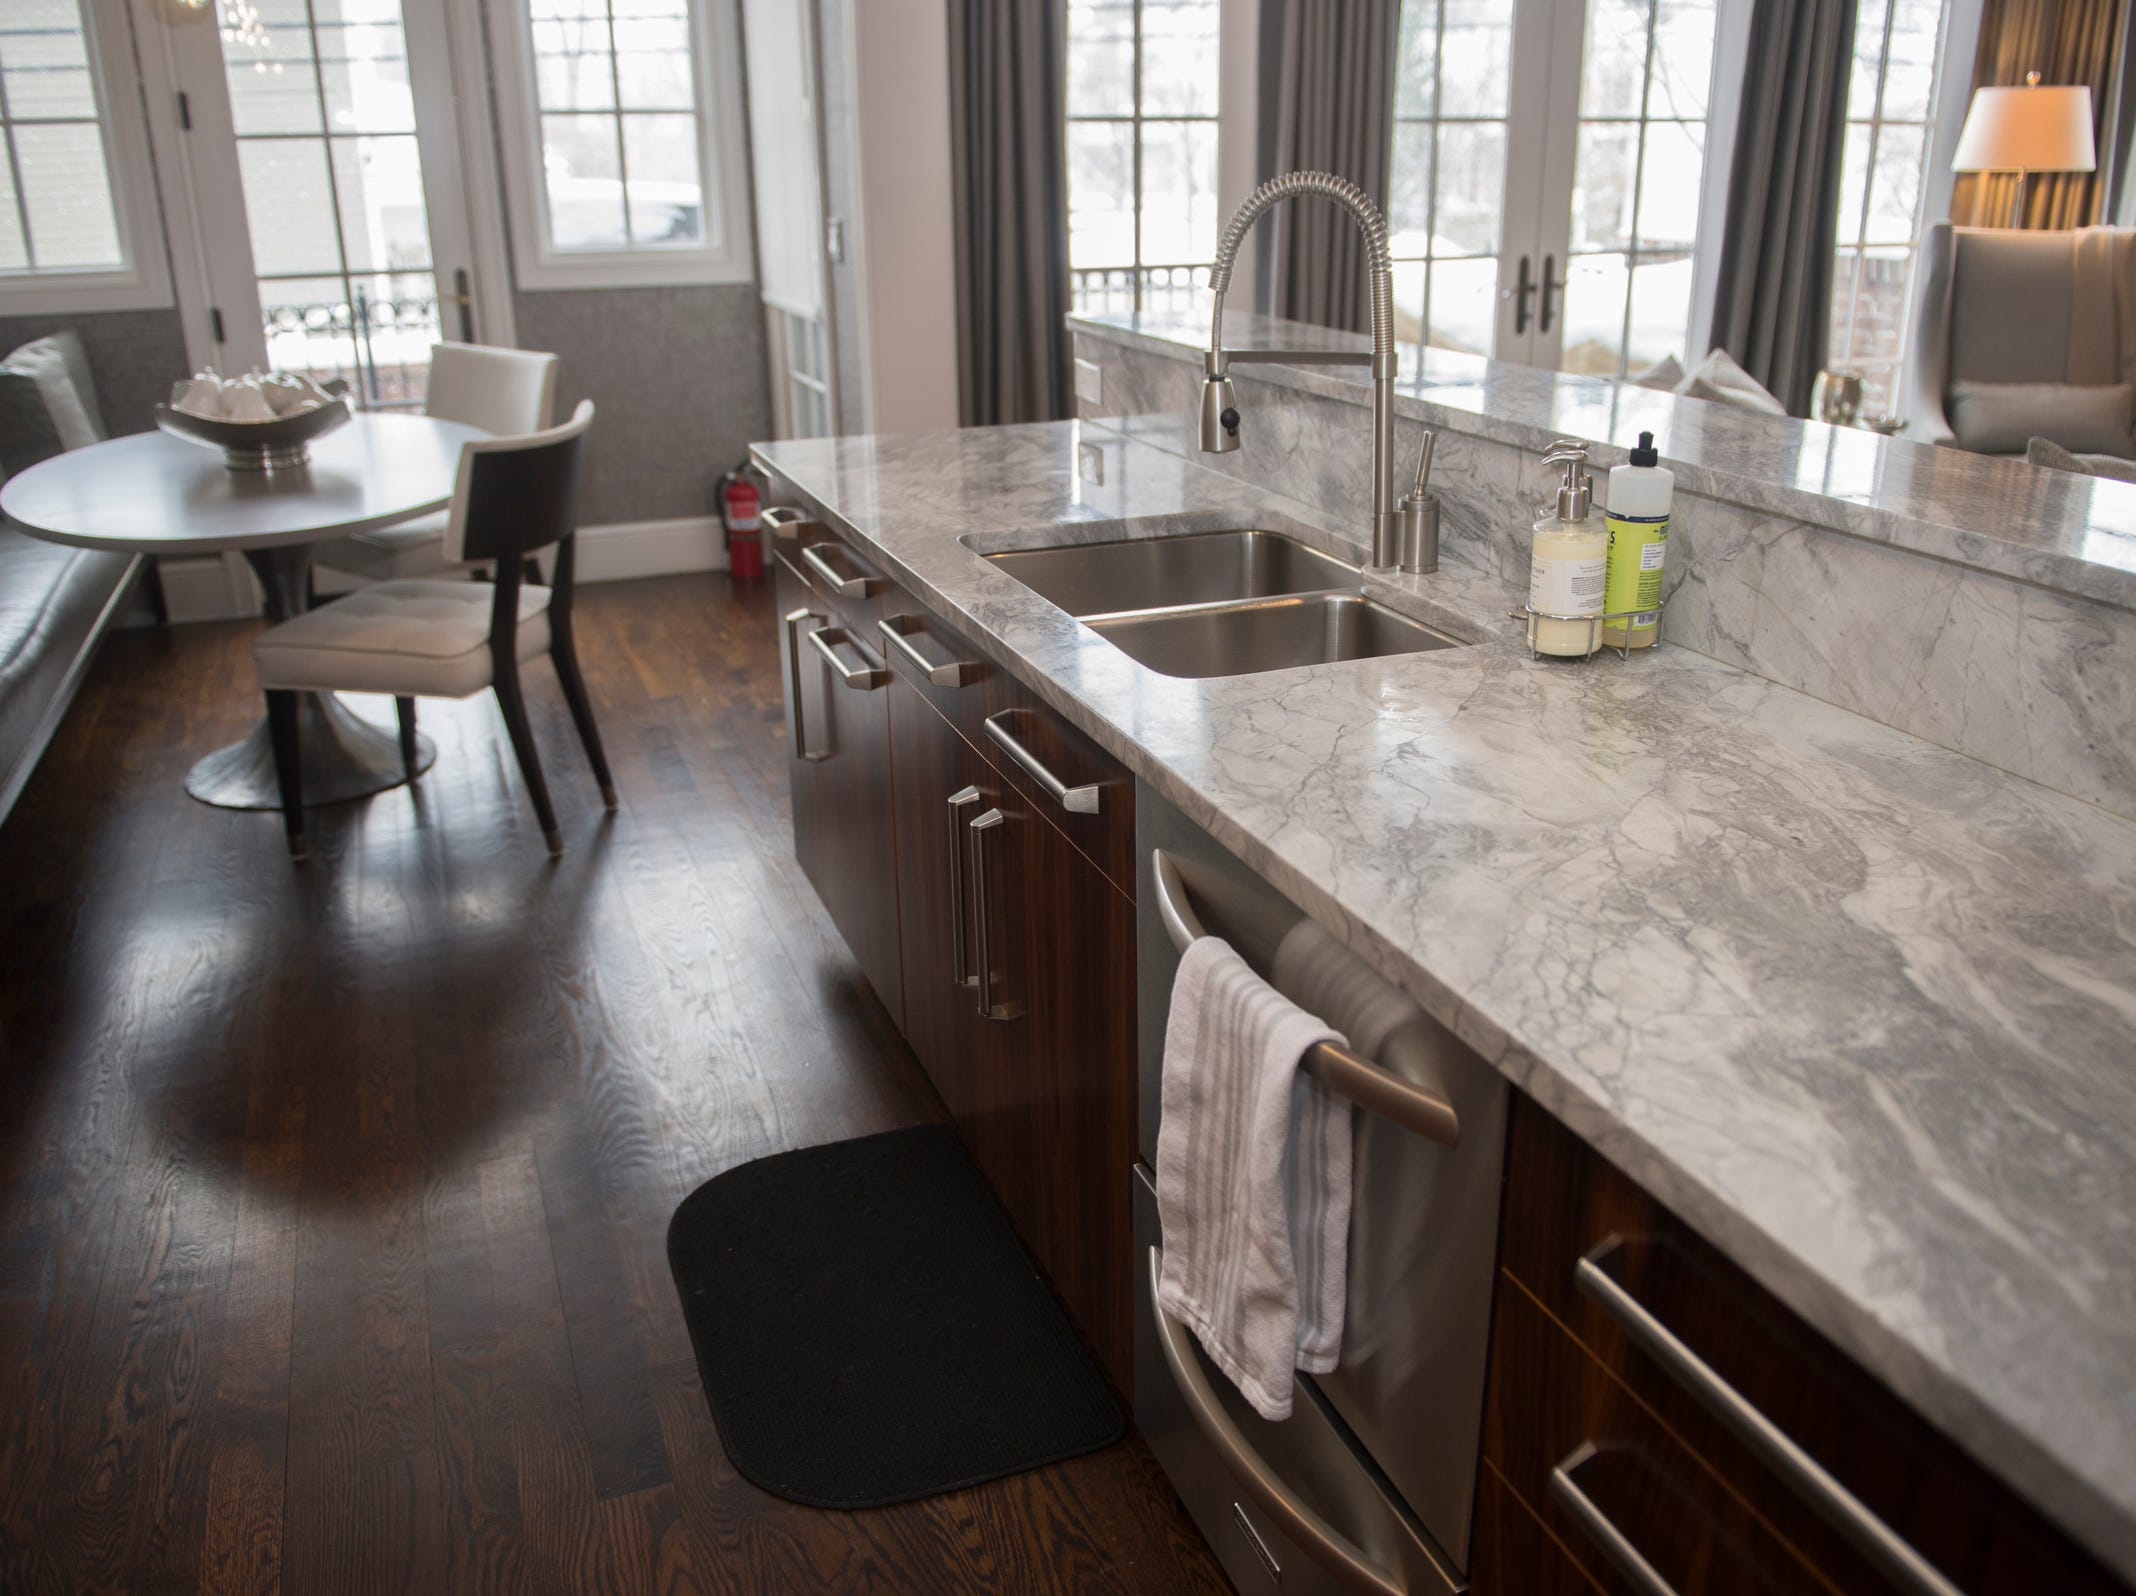 There's plenty of counter space in the kitchen, and the fire extinguisher is included.